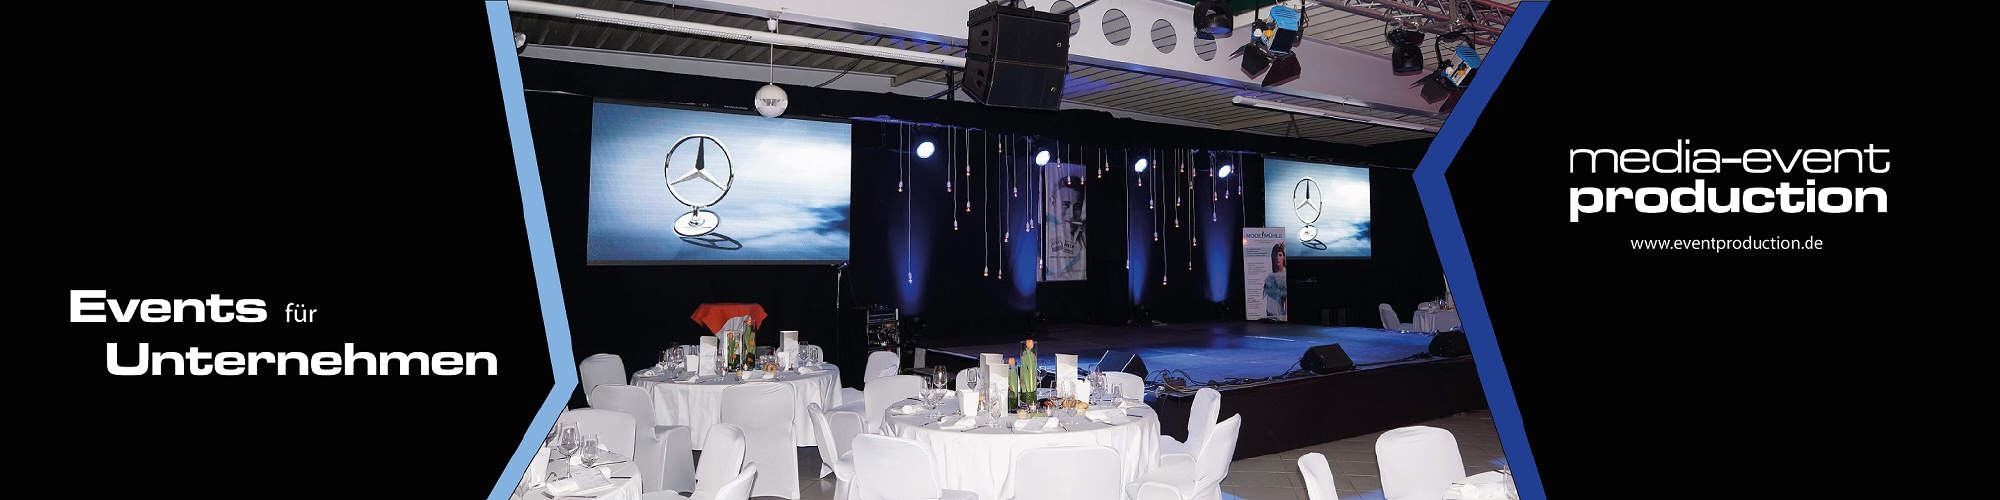 media-event-production Business